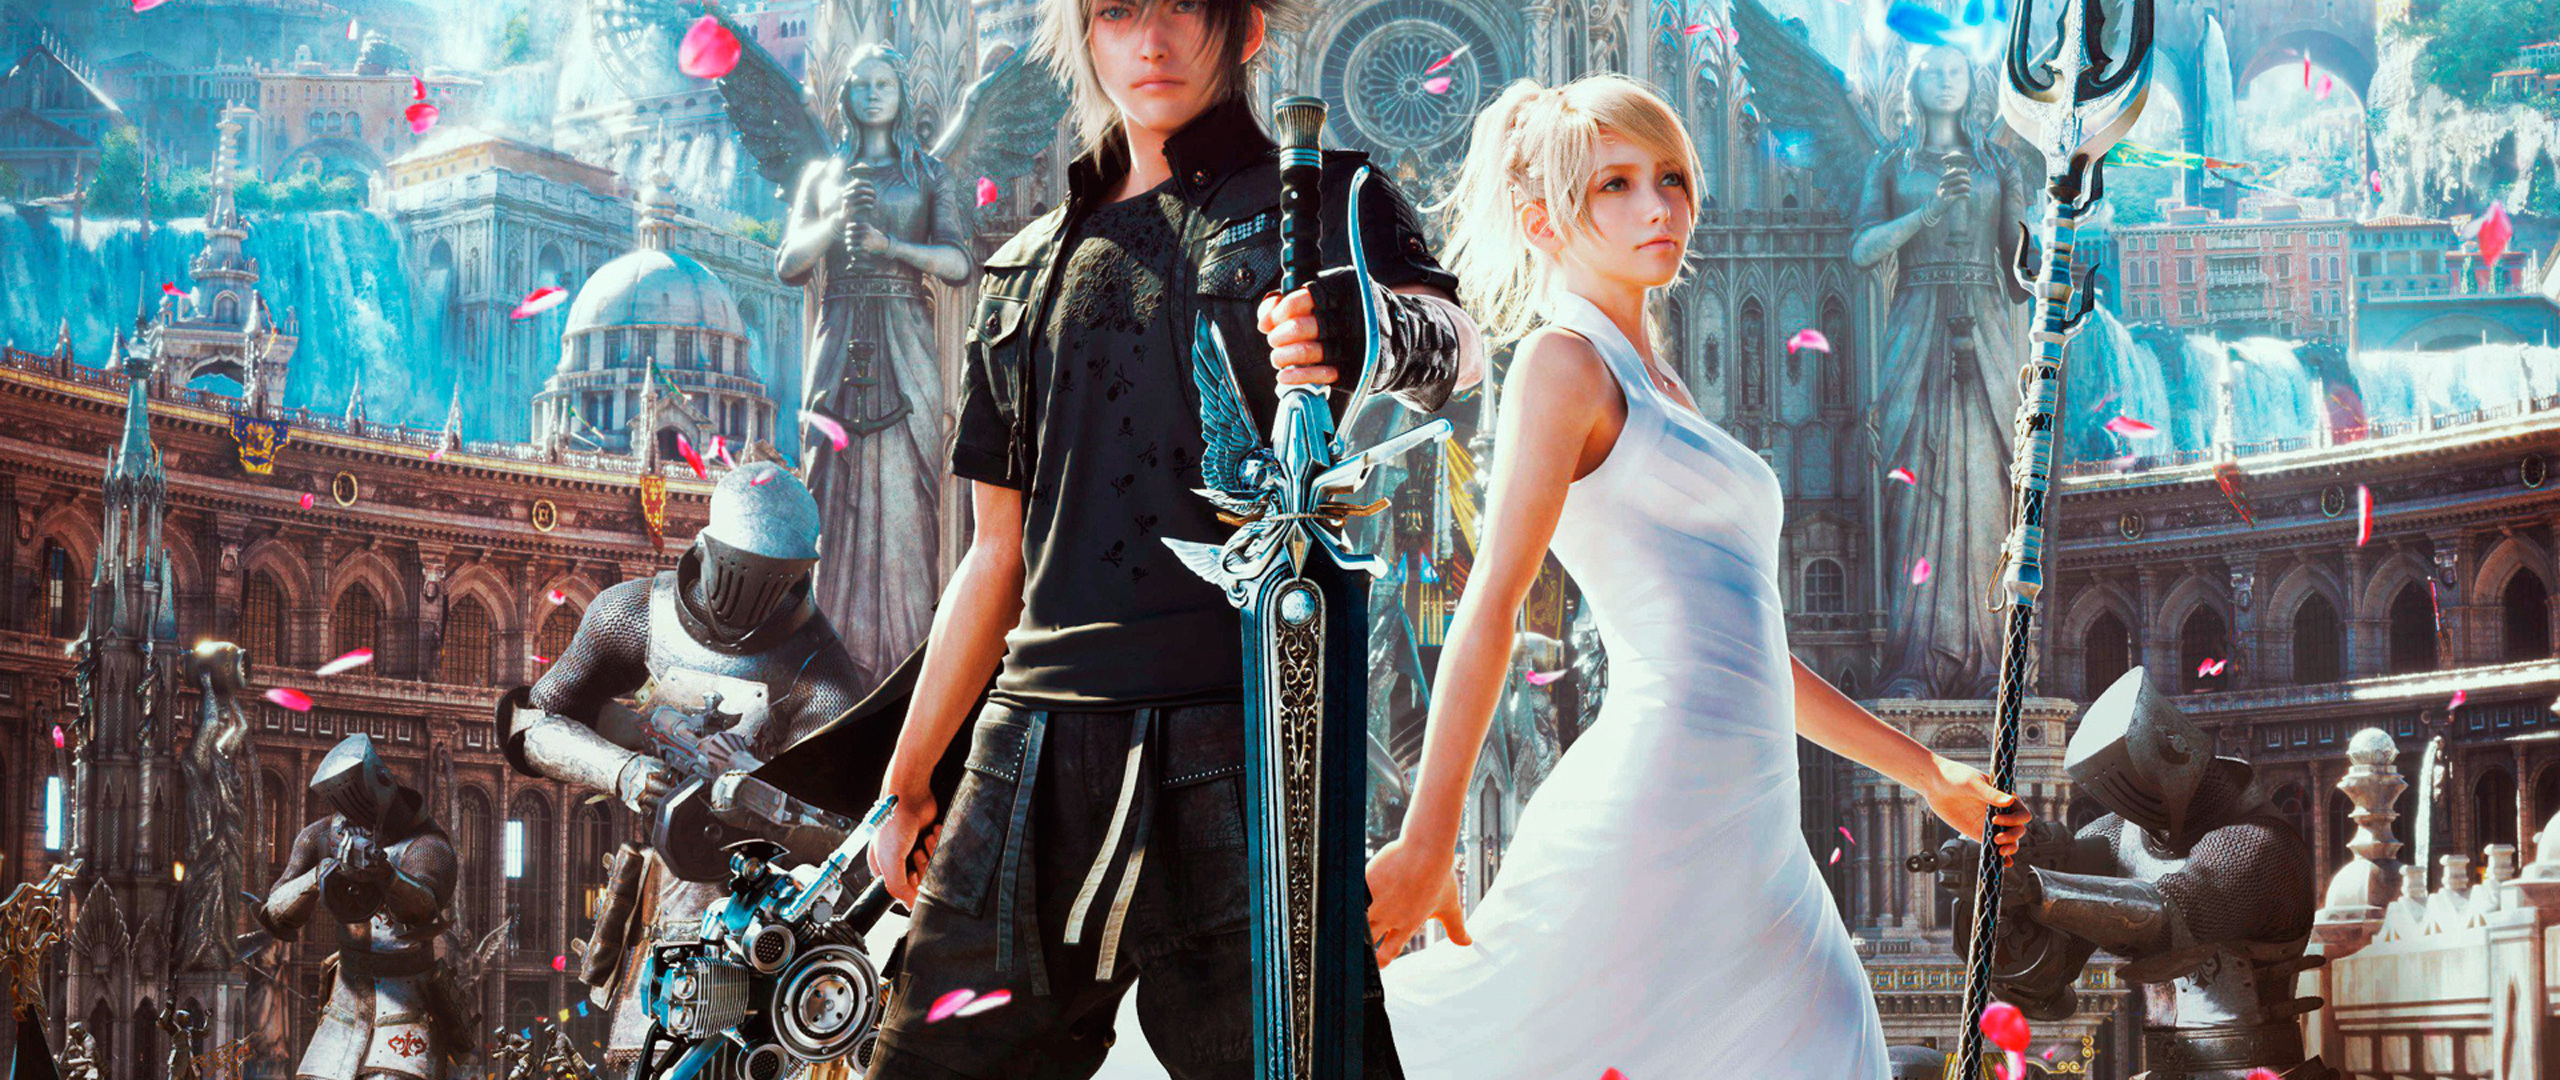 Final Fantasy Xv 4k Wallpapers: 2560x1080 Final Fantasy Xv Artwork 2560x1080 Resolution HD